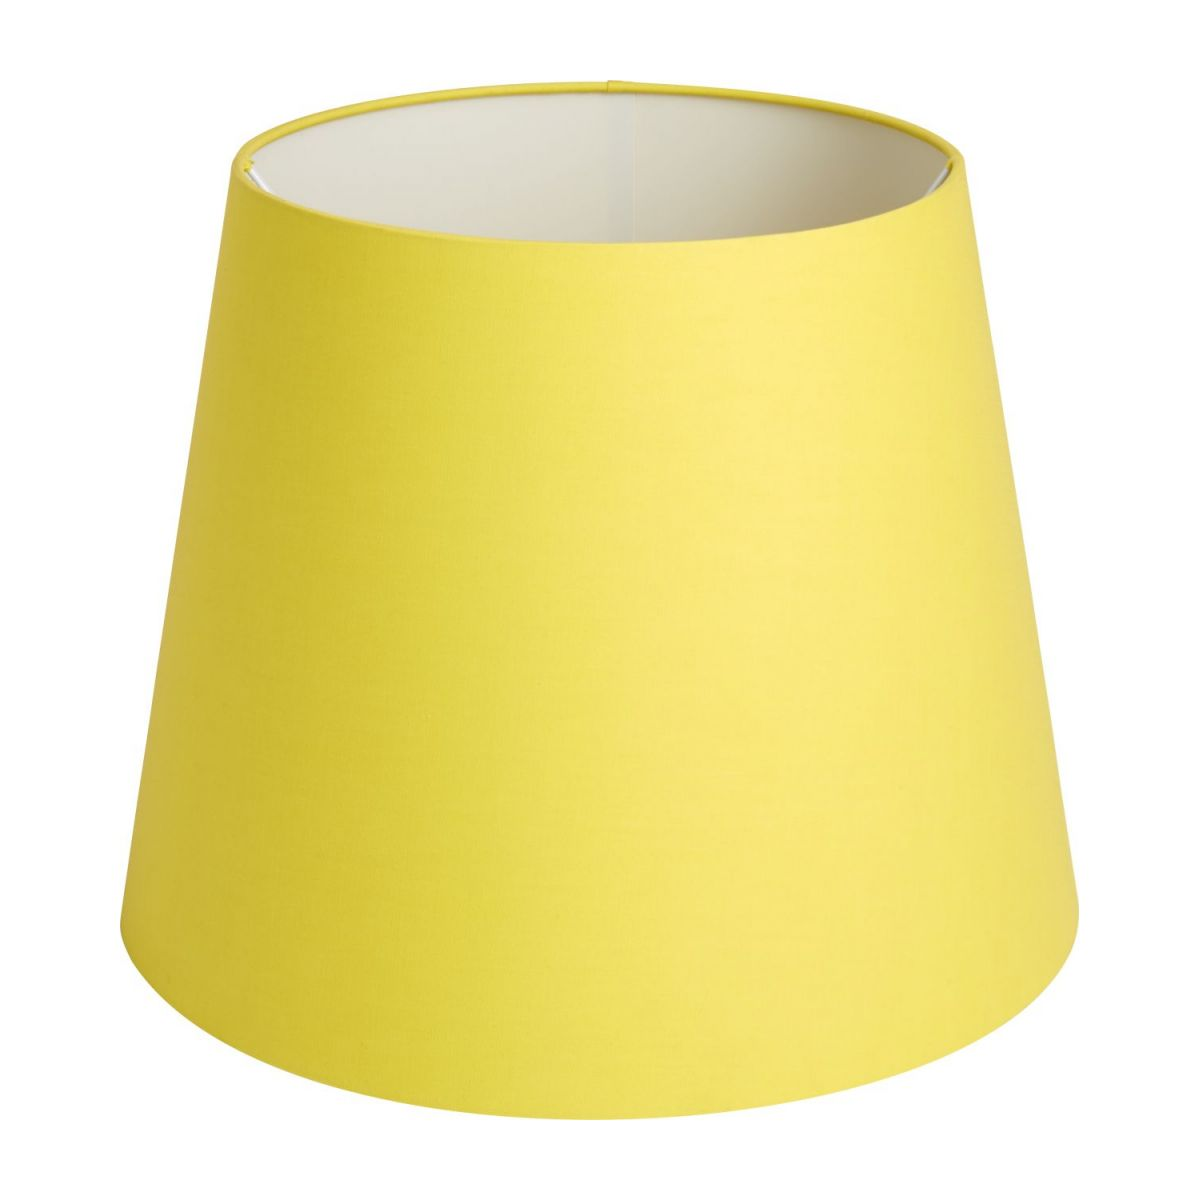 Large yellow lampshade n°1